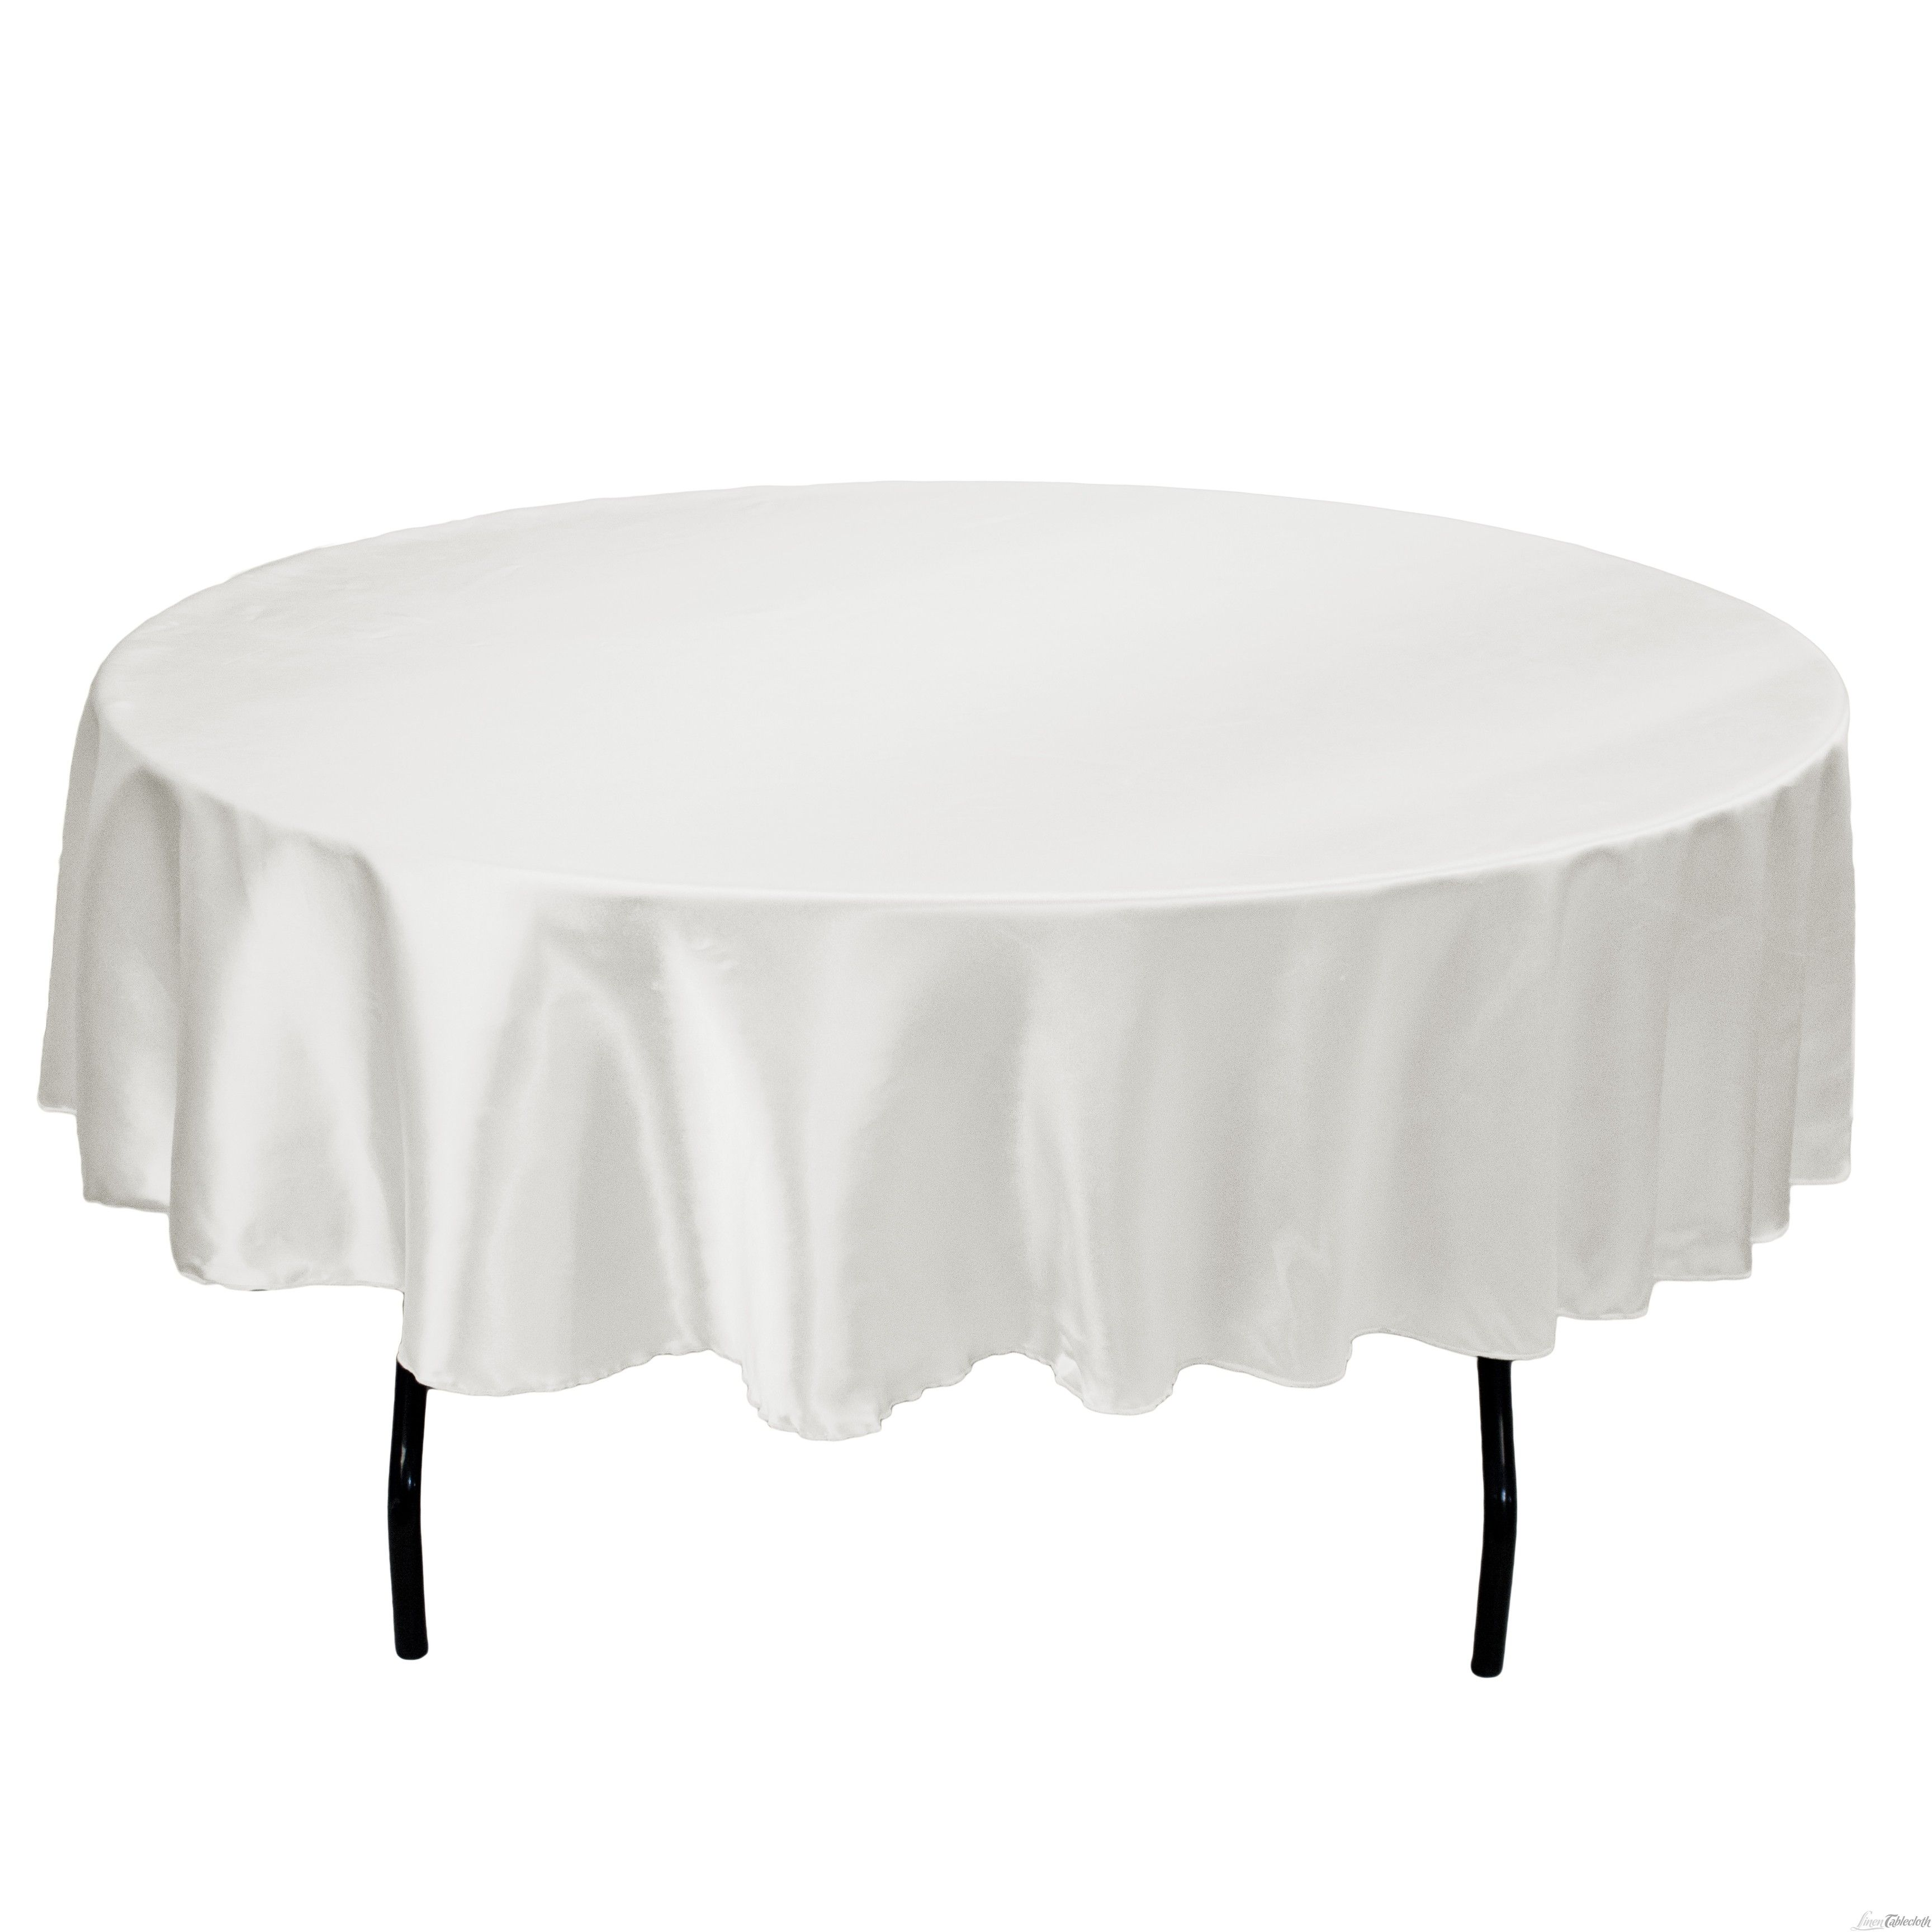 90 Round Satin On 60 Table Available In White Black Ivory